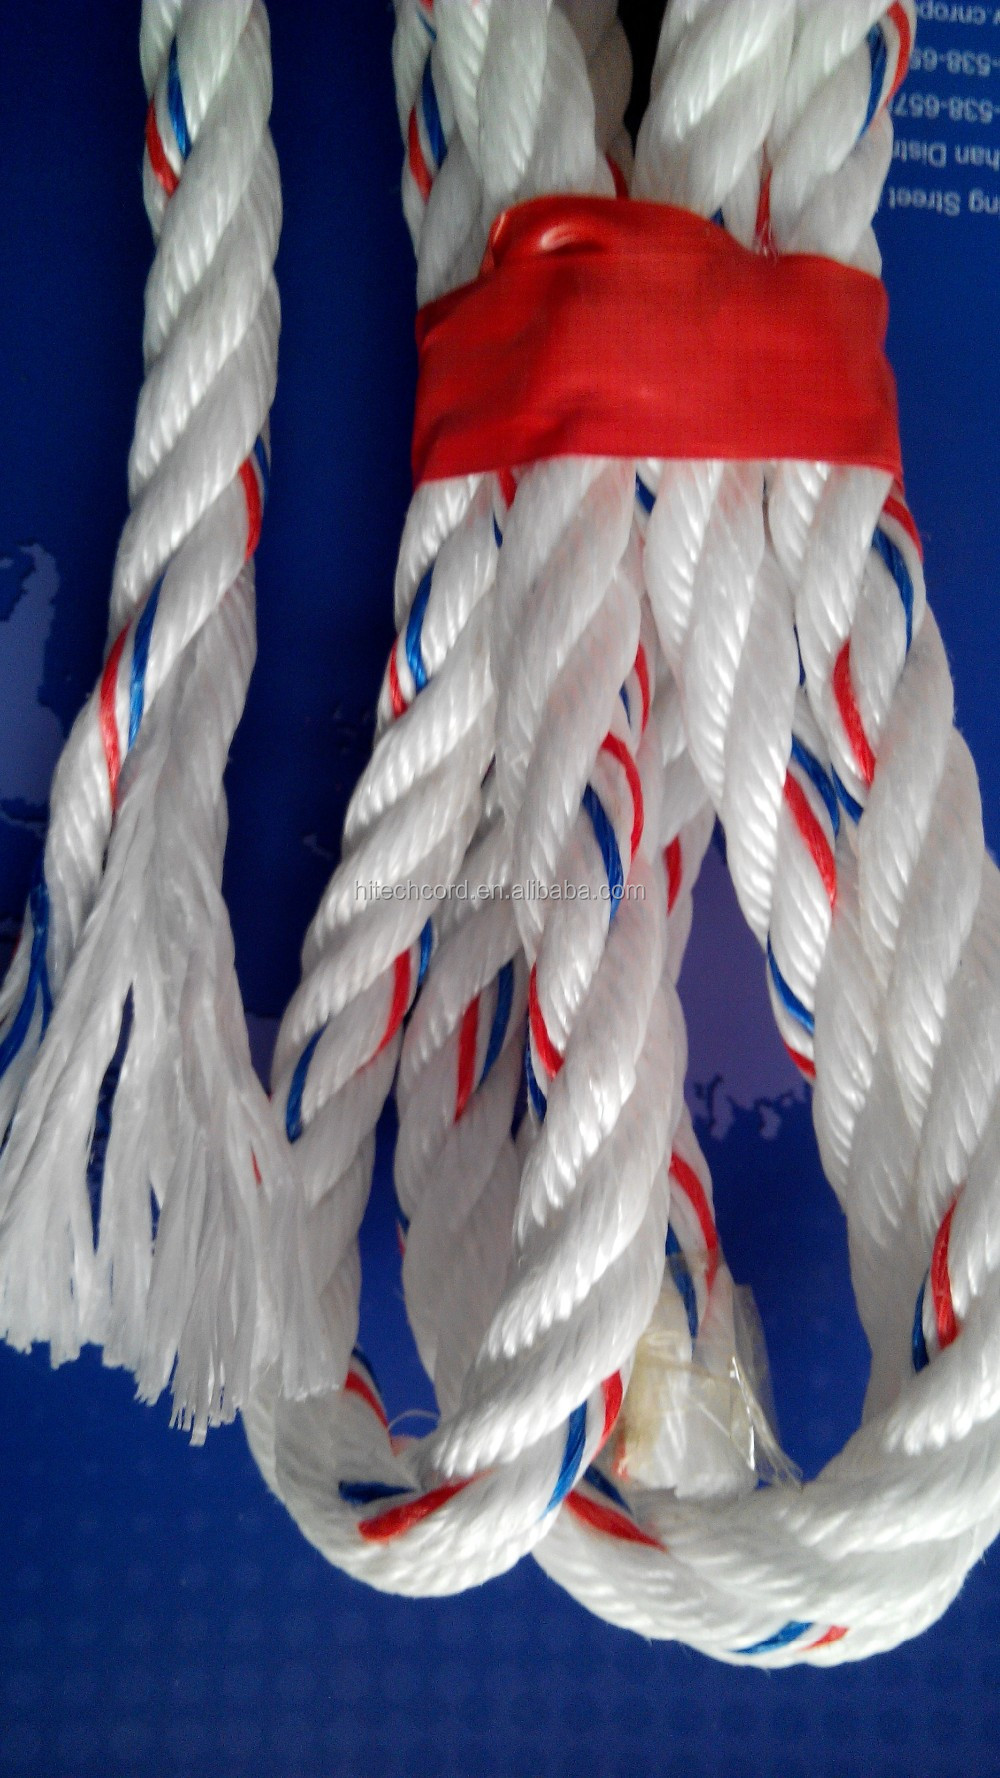 High Quality 1/2 Inch 3-Strand PP Danline Rope with Factory Price